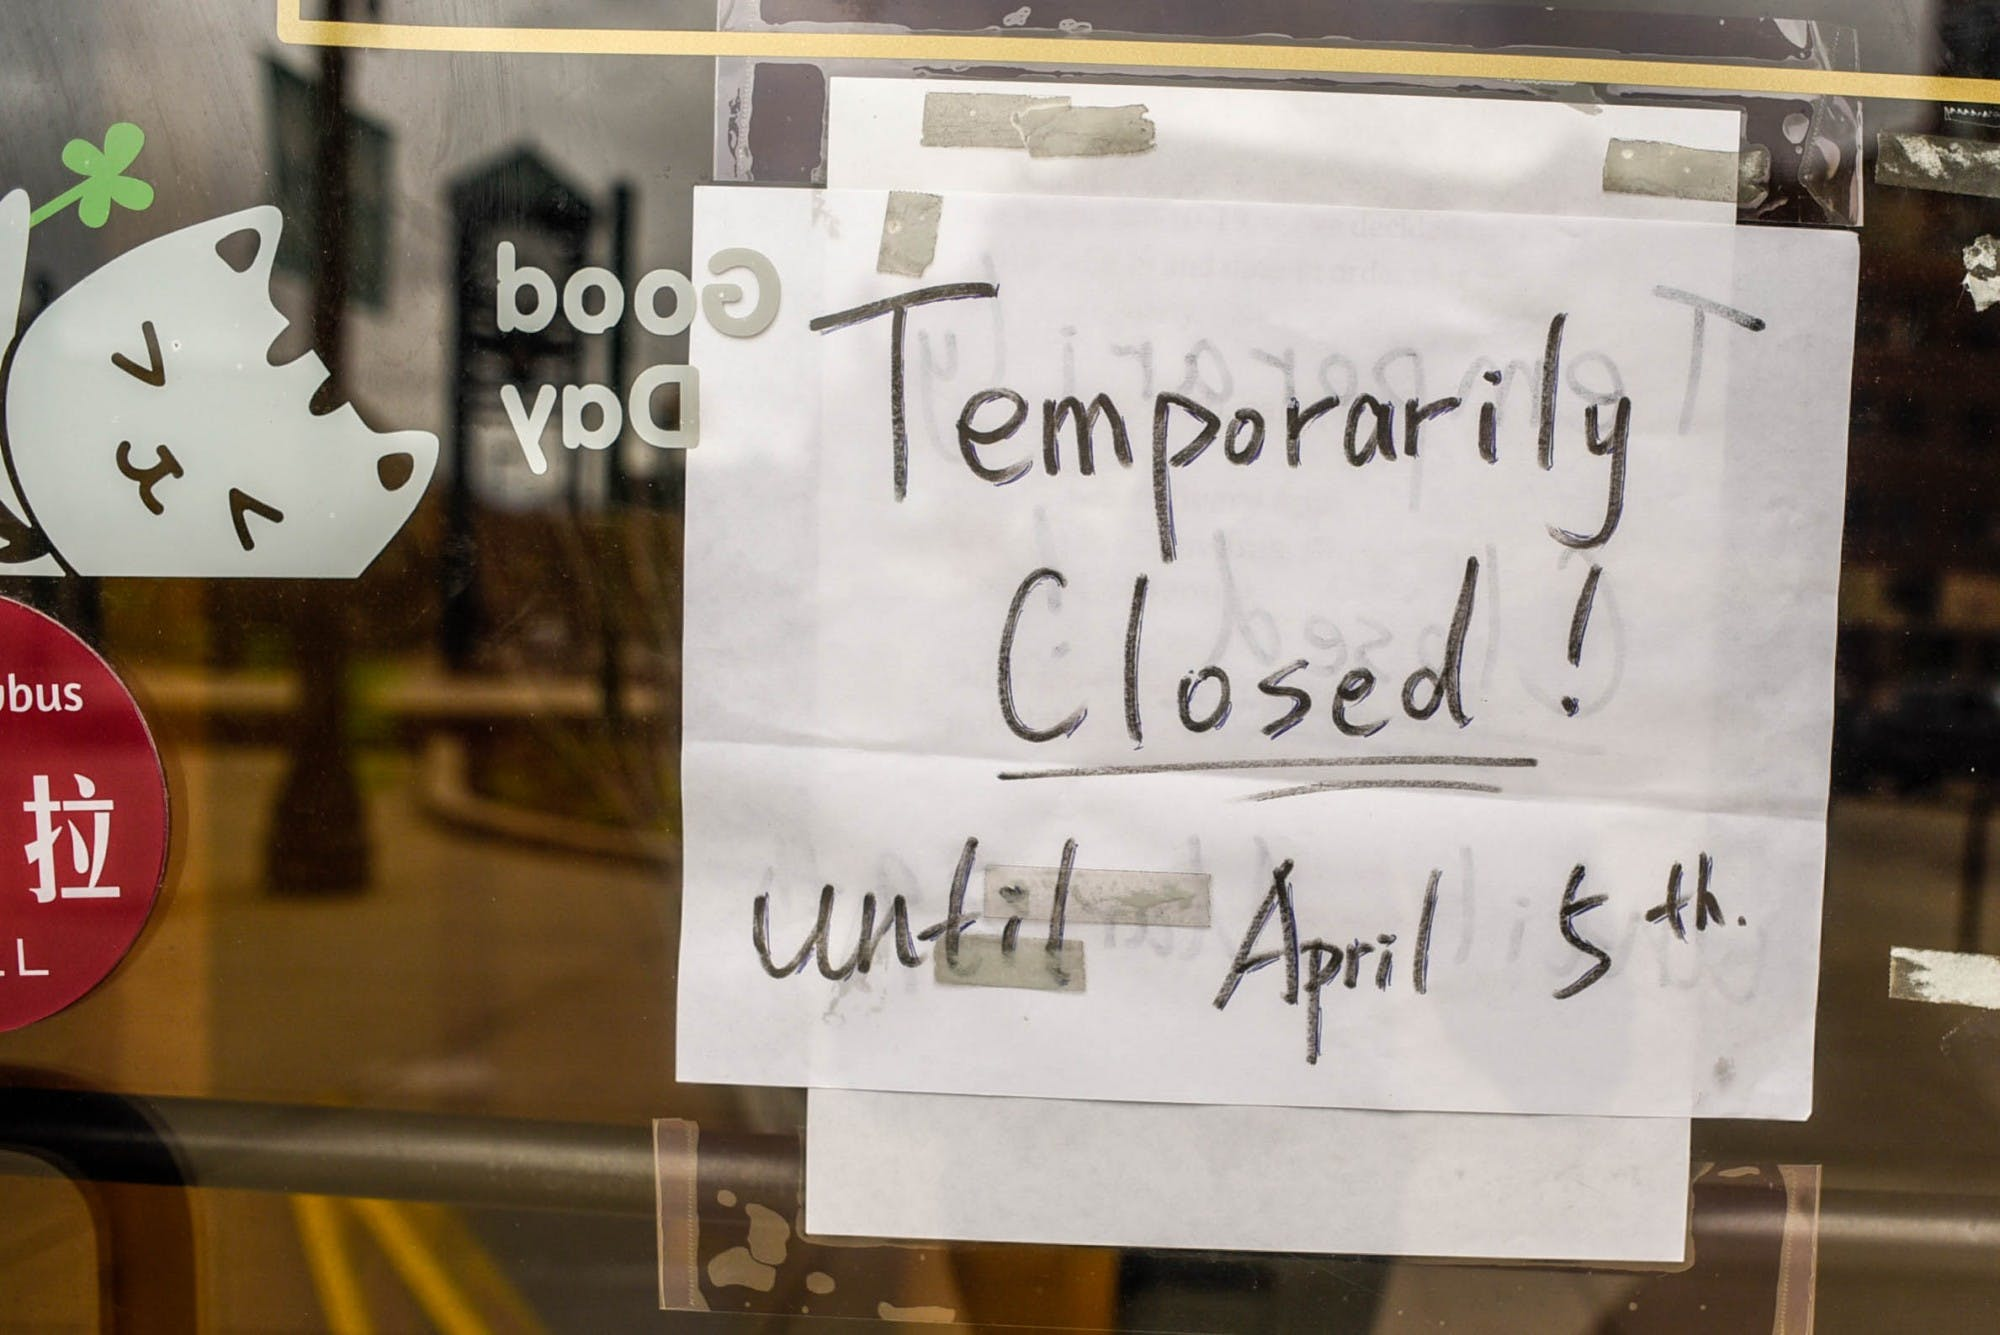 A piece of paper with a handwritten note that says 'Temporarily closed! Until April 5th' is taped to a window of a business.